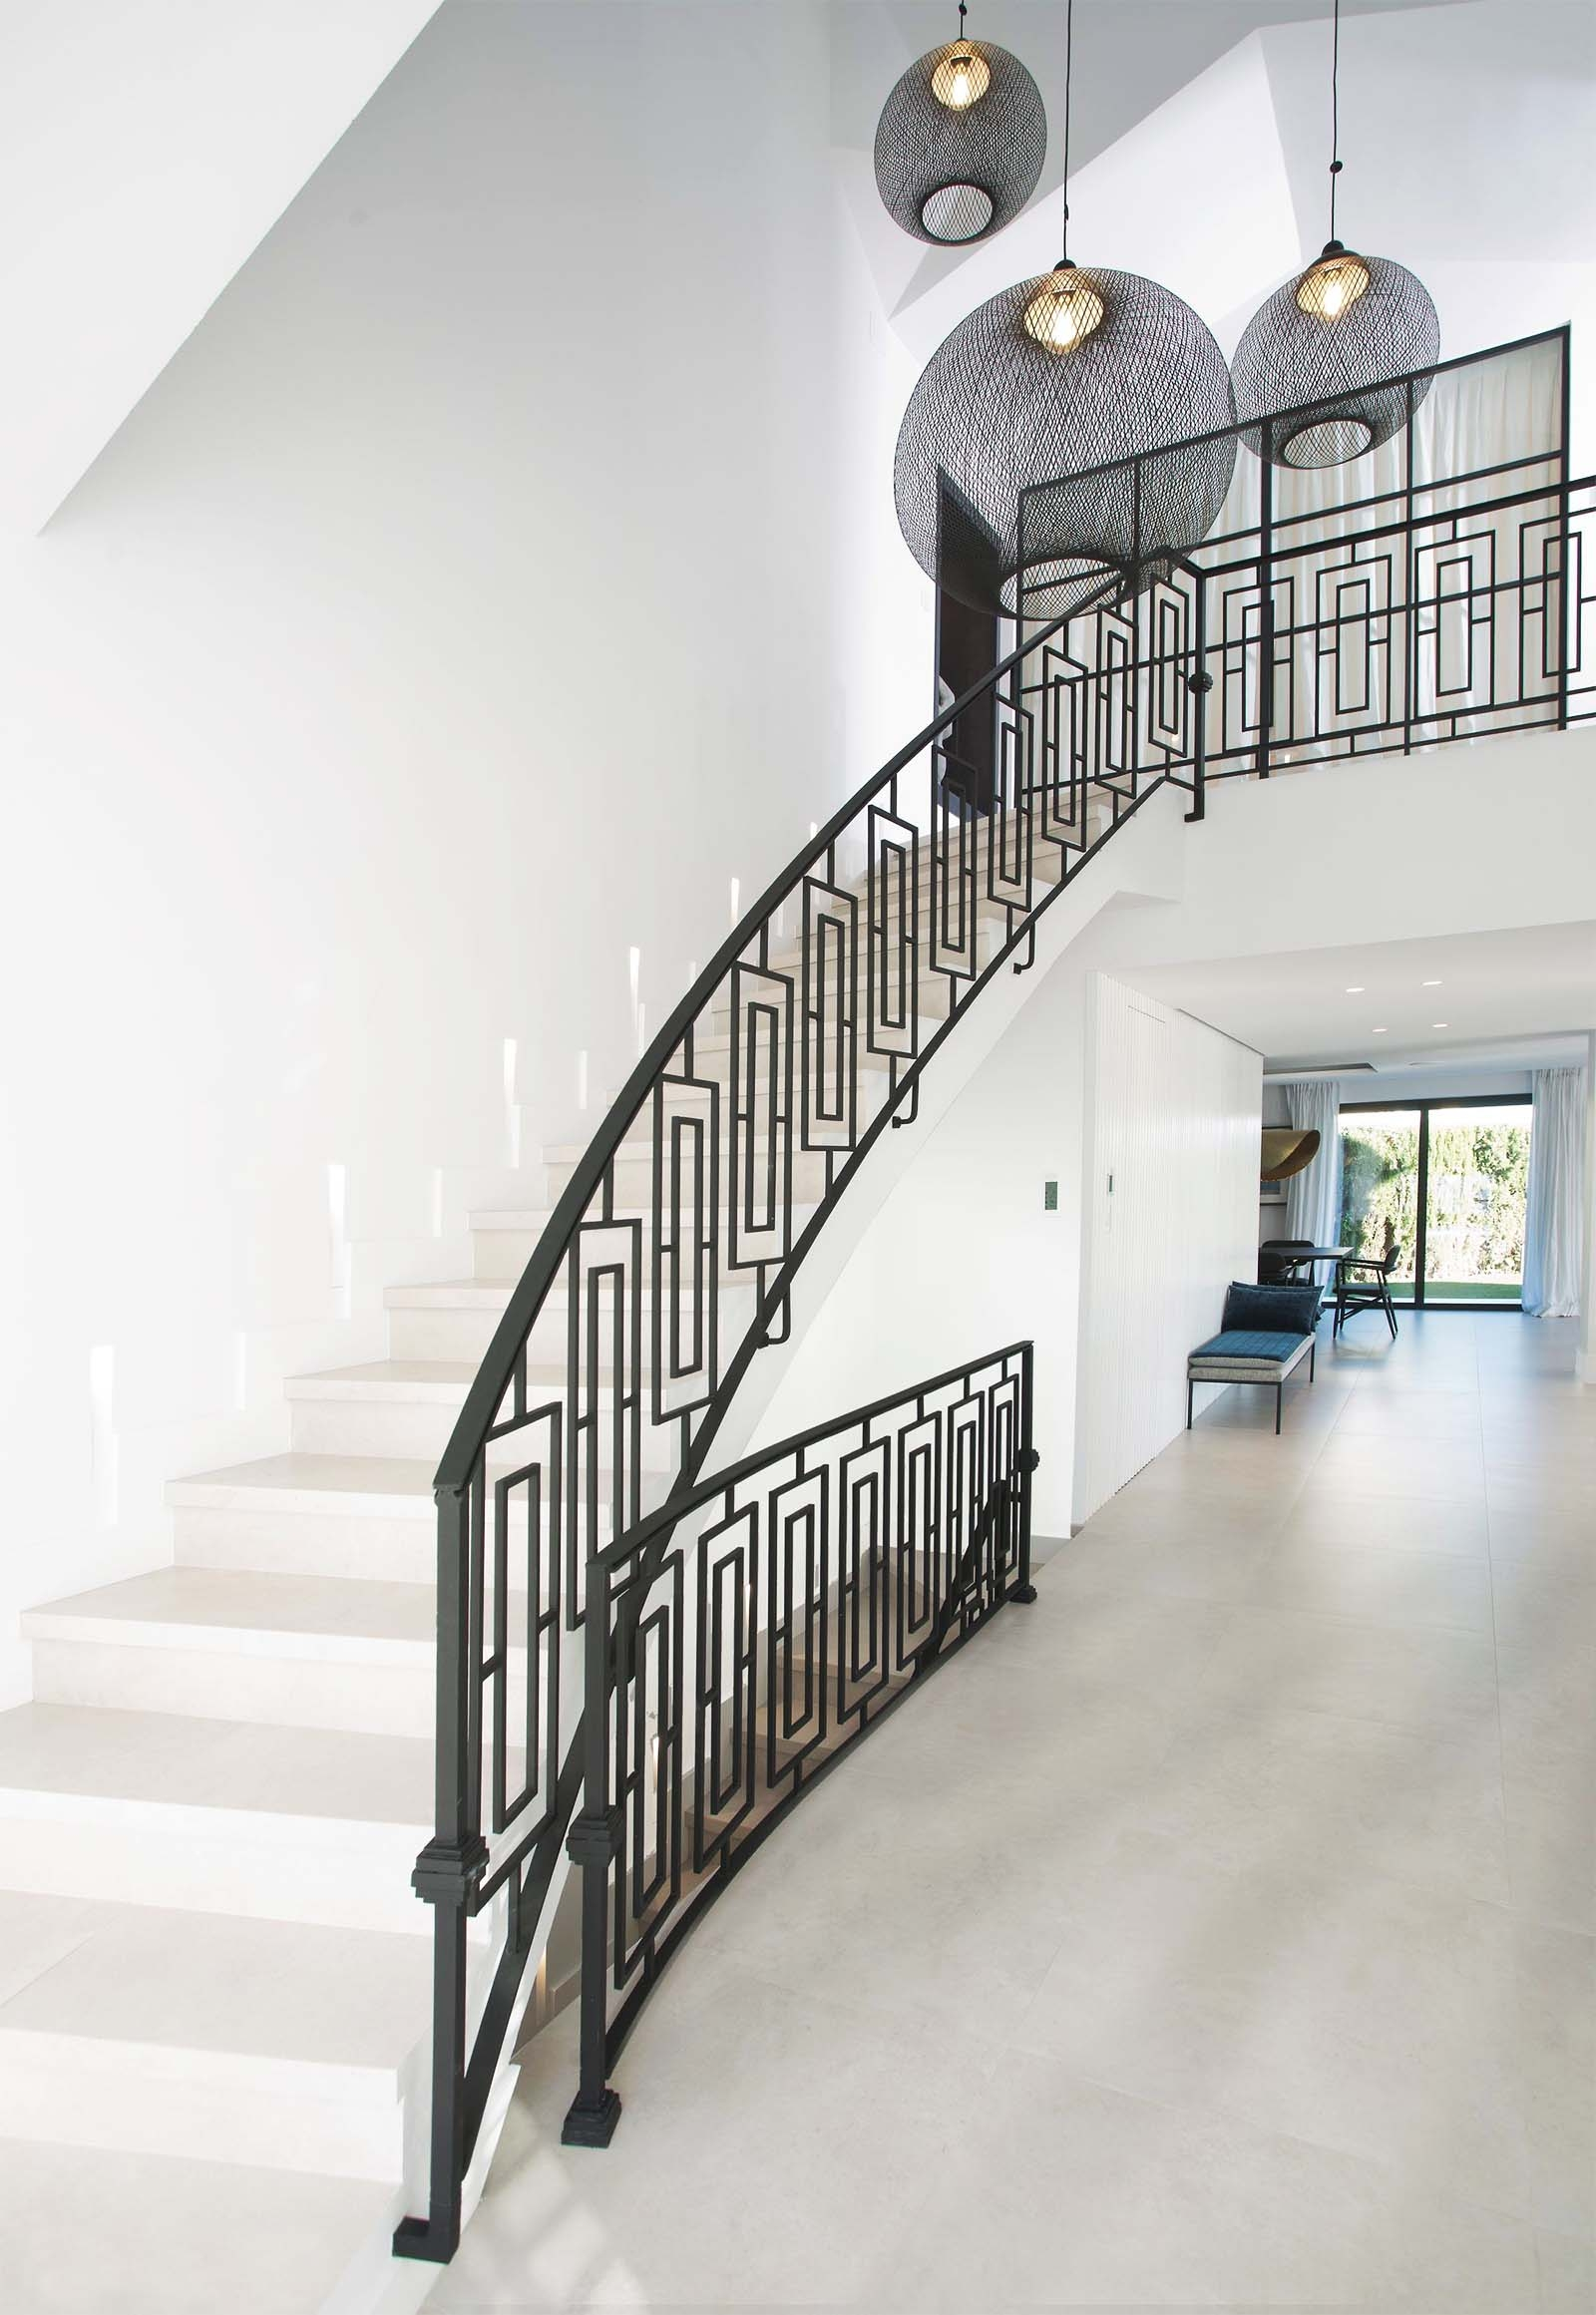 Modern Staircase Design Contemporary Stair Design Ideas   Staircase Side Railing Designs   Luxury Railing   Living Room   Modern Style   Beautiful   Stairway